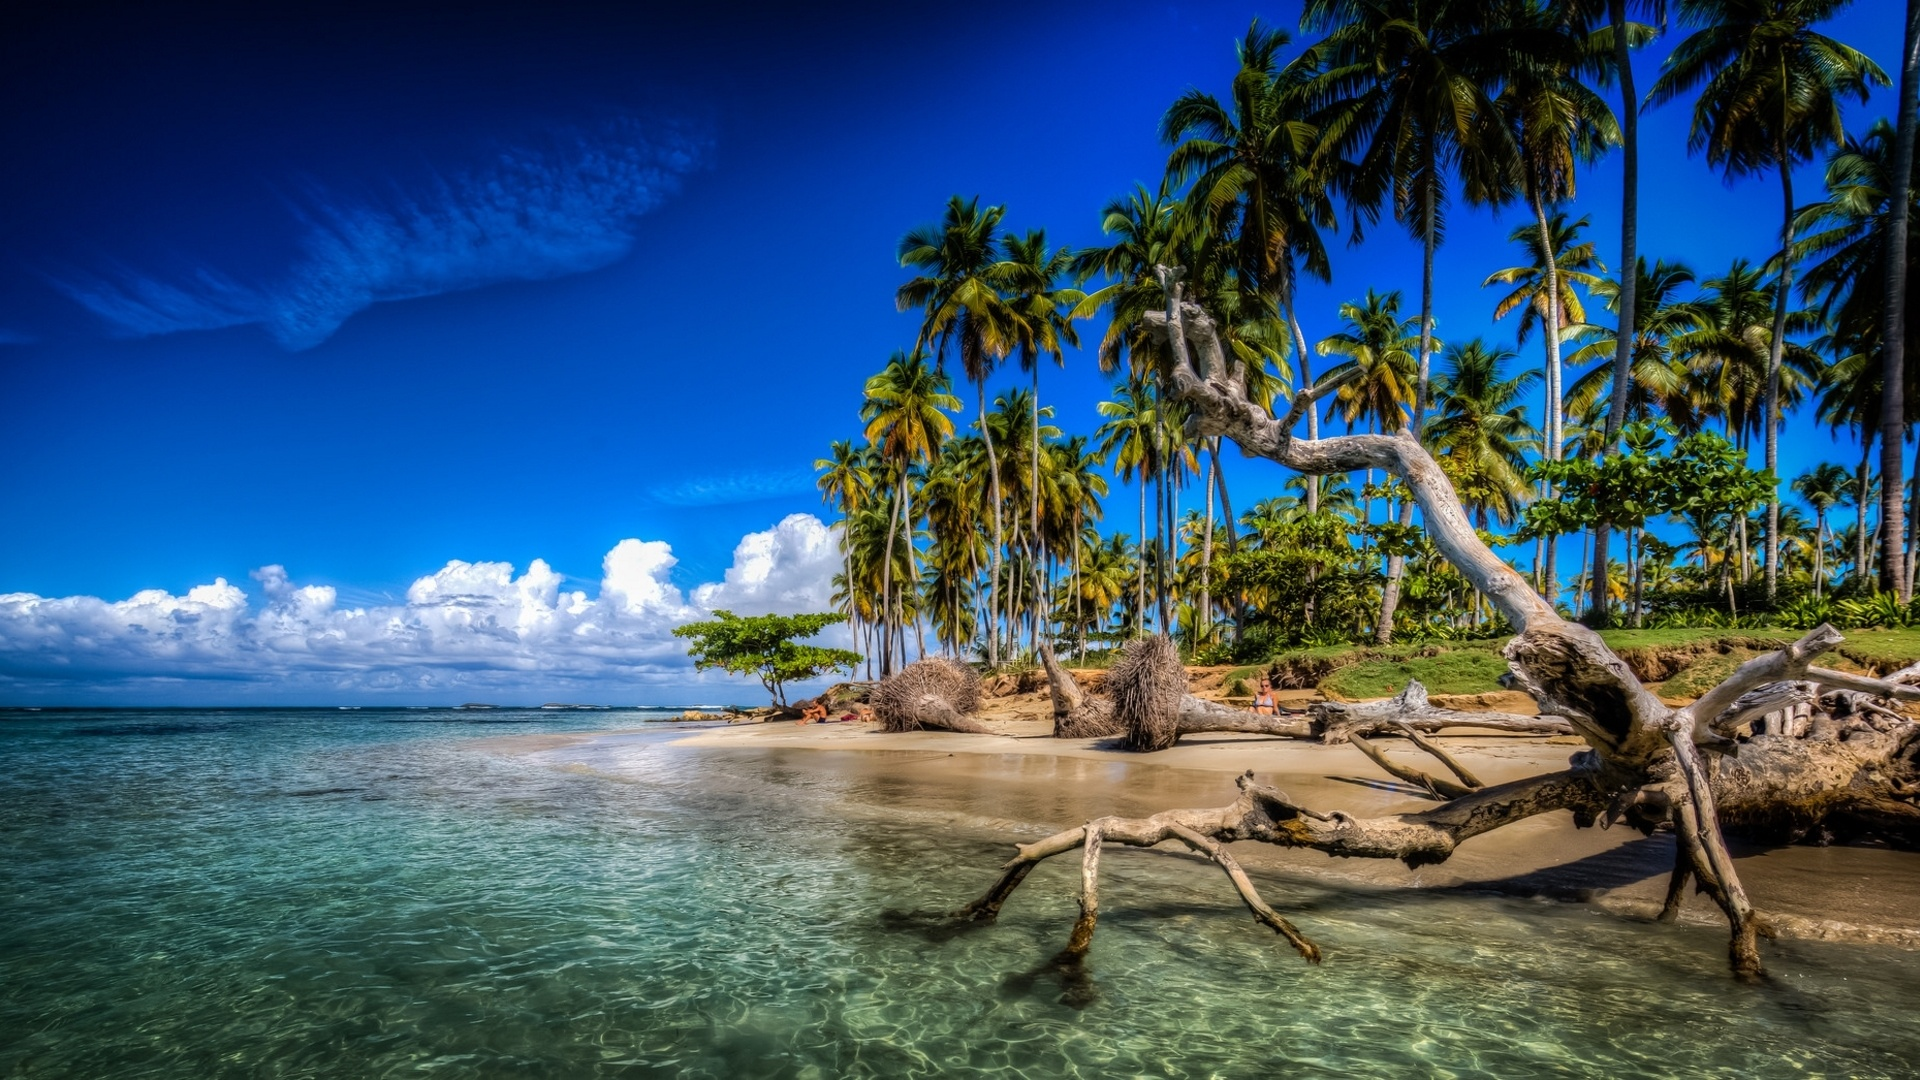 Karibik palmen strand meer wolken dominikanische republik 1920x1080 full hd - Wallpaper dominican republic ...